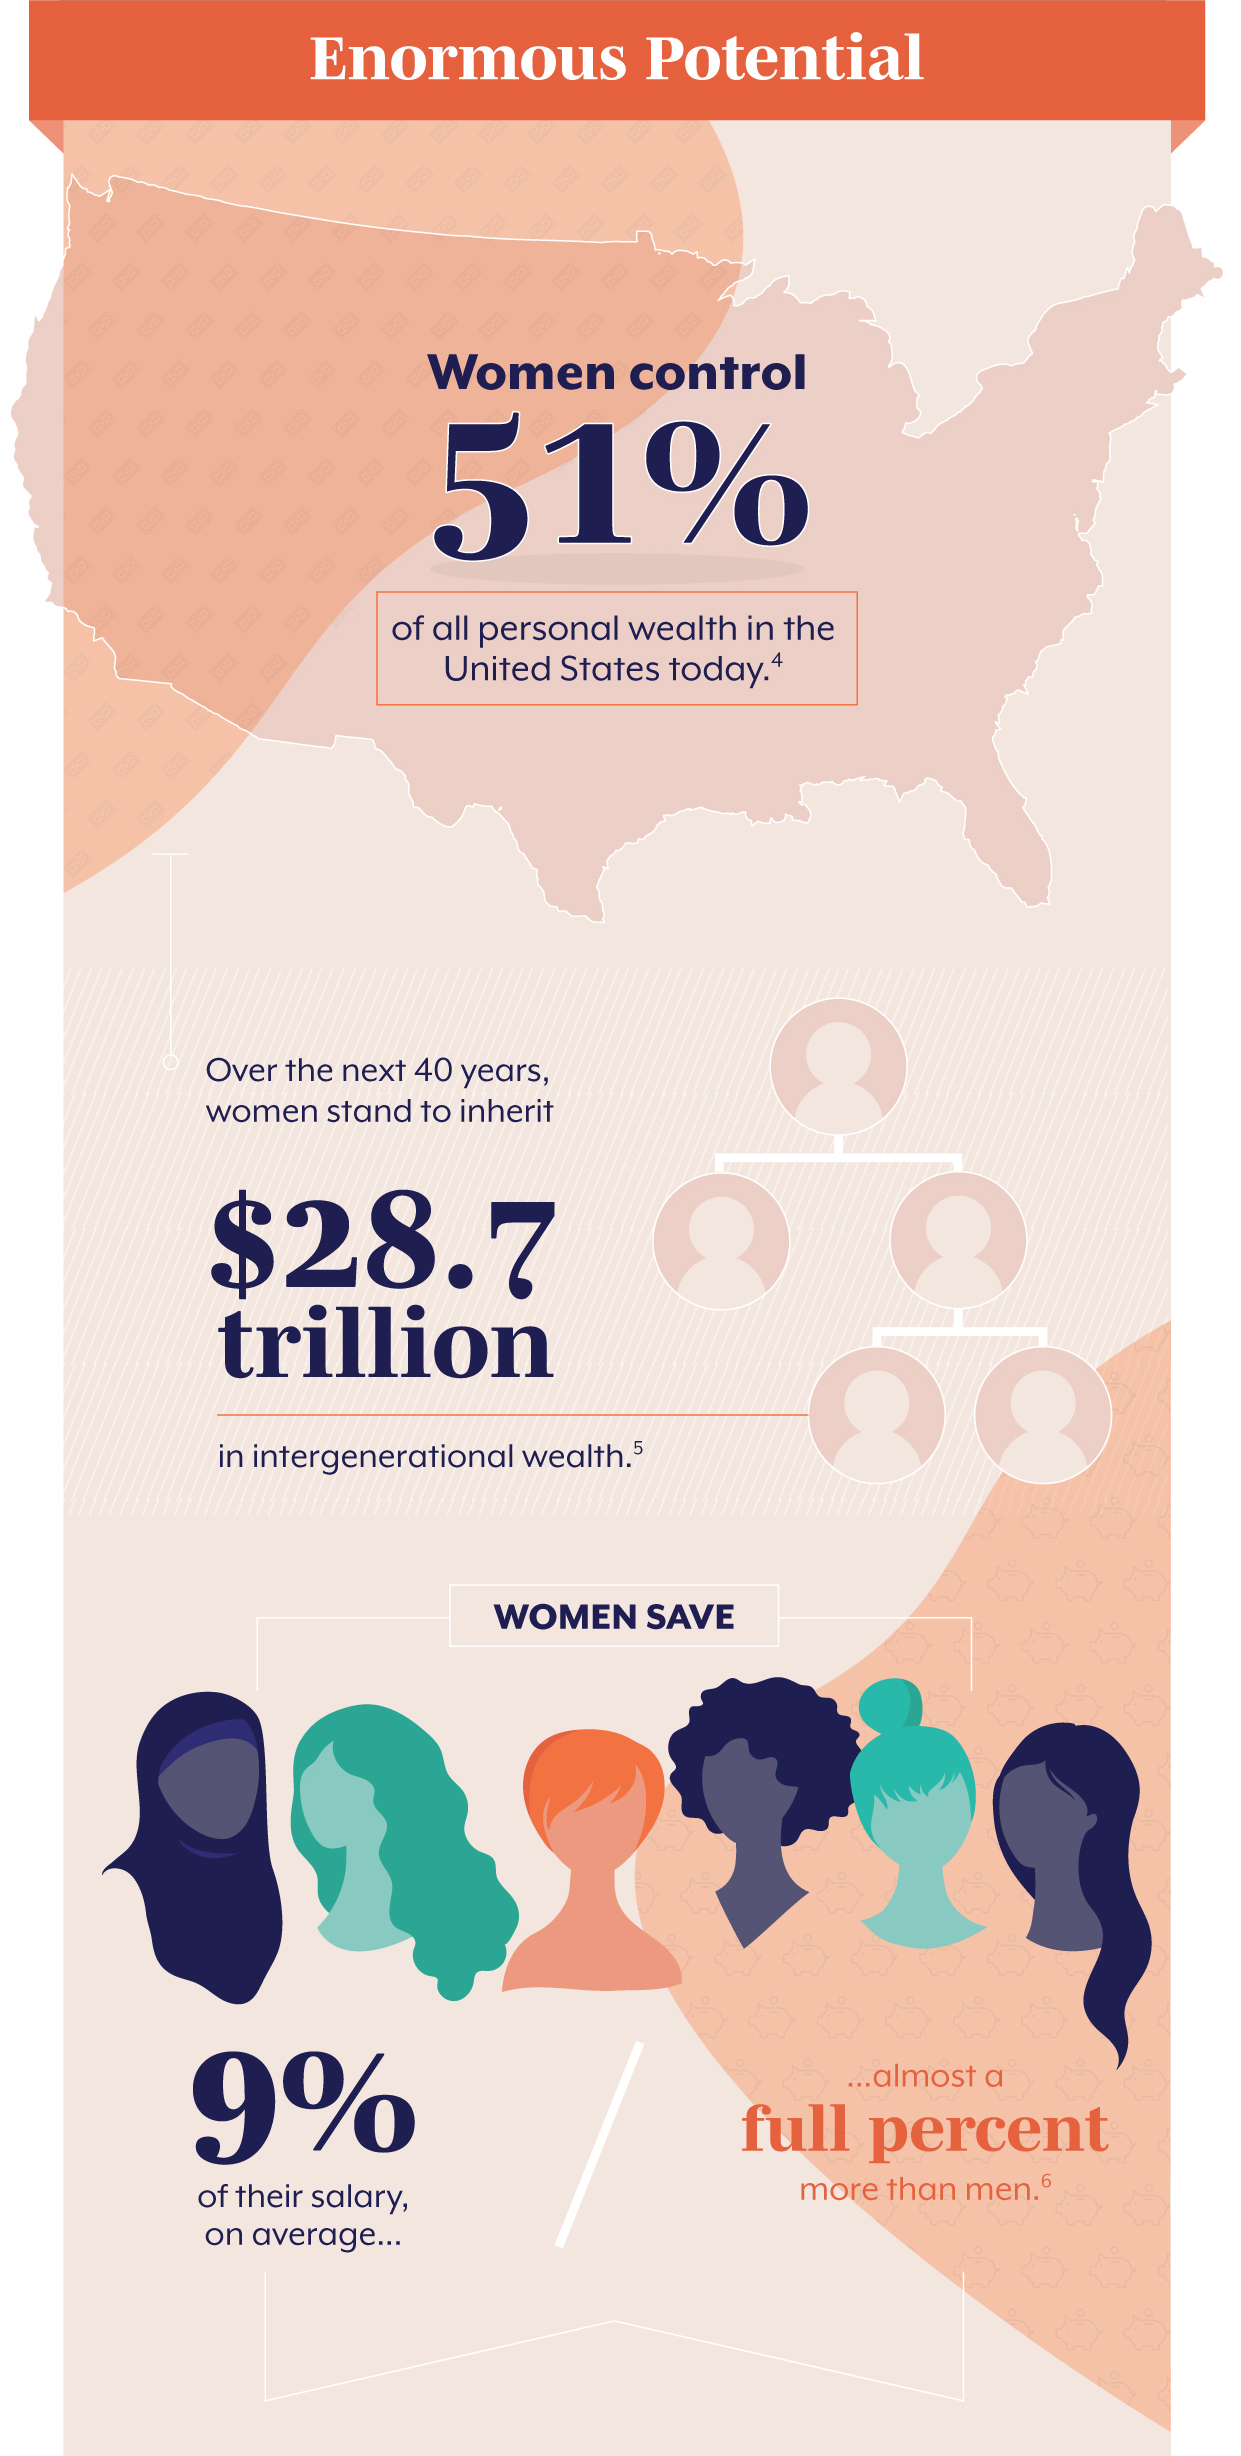 Enormous Potential The truth is, women wield a huge amount of influence over the economy, and their impact is only likely to grow. Women control 51% of all personal wealth in the United States today. (4) Over the next 40 years, women stand to inherit $28.7 trillion in intergenerational wealth. (5) On average, women save 9% of their salary. That's almost a full percent higher than men. (6)